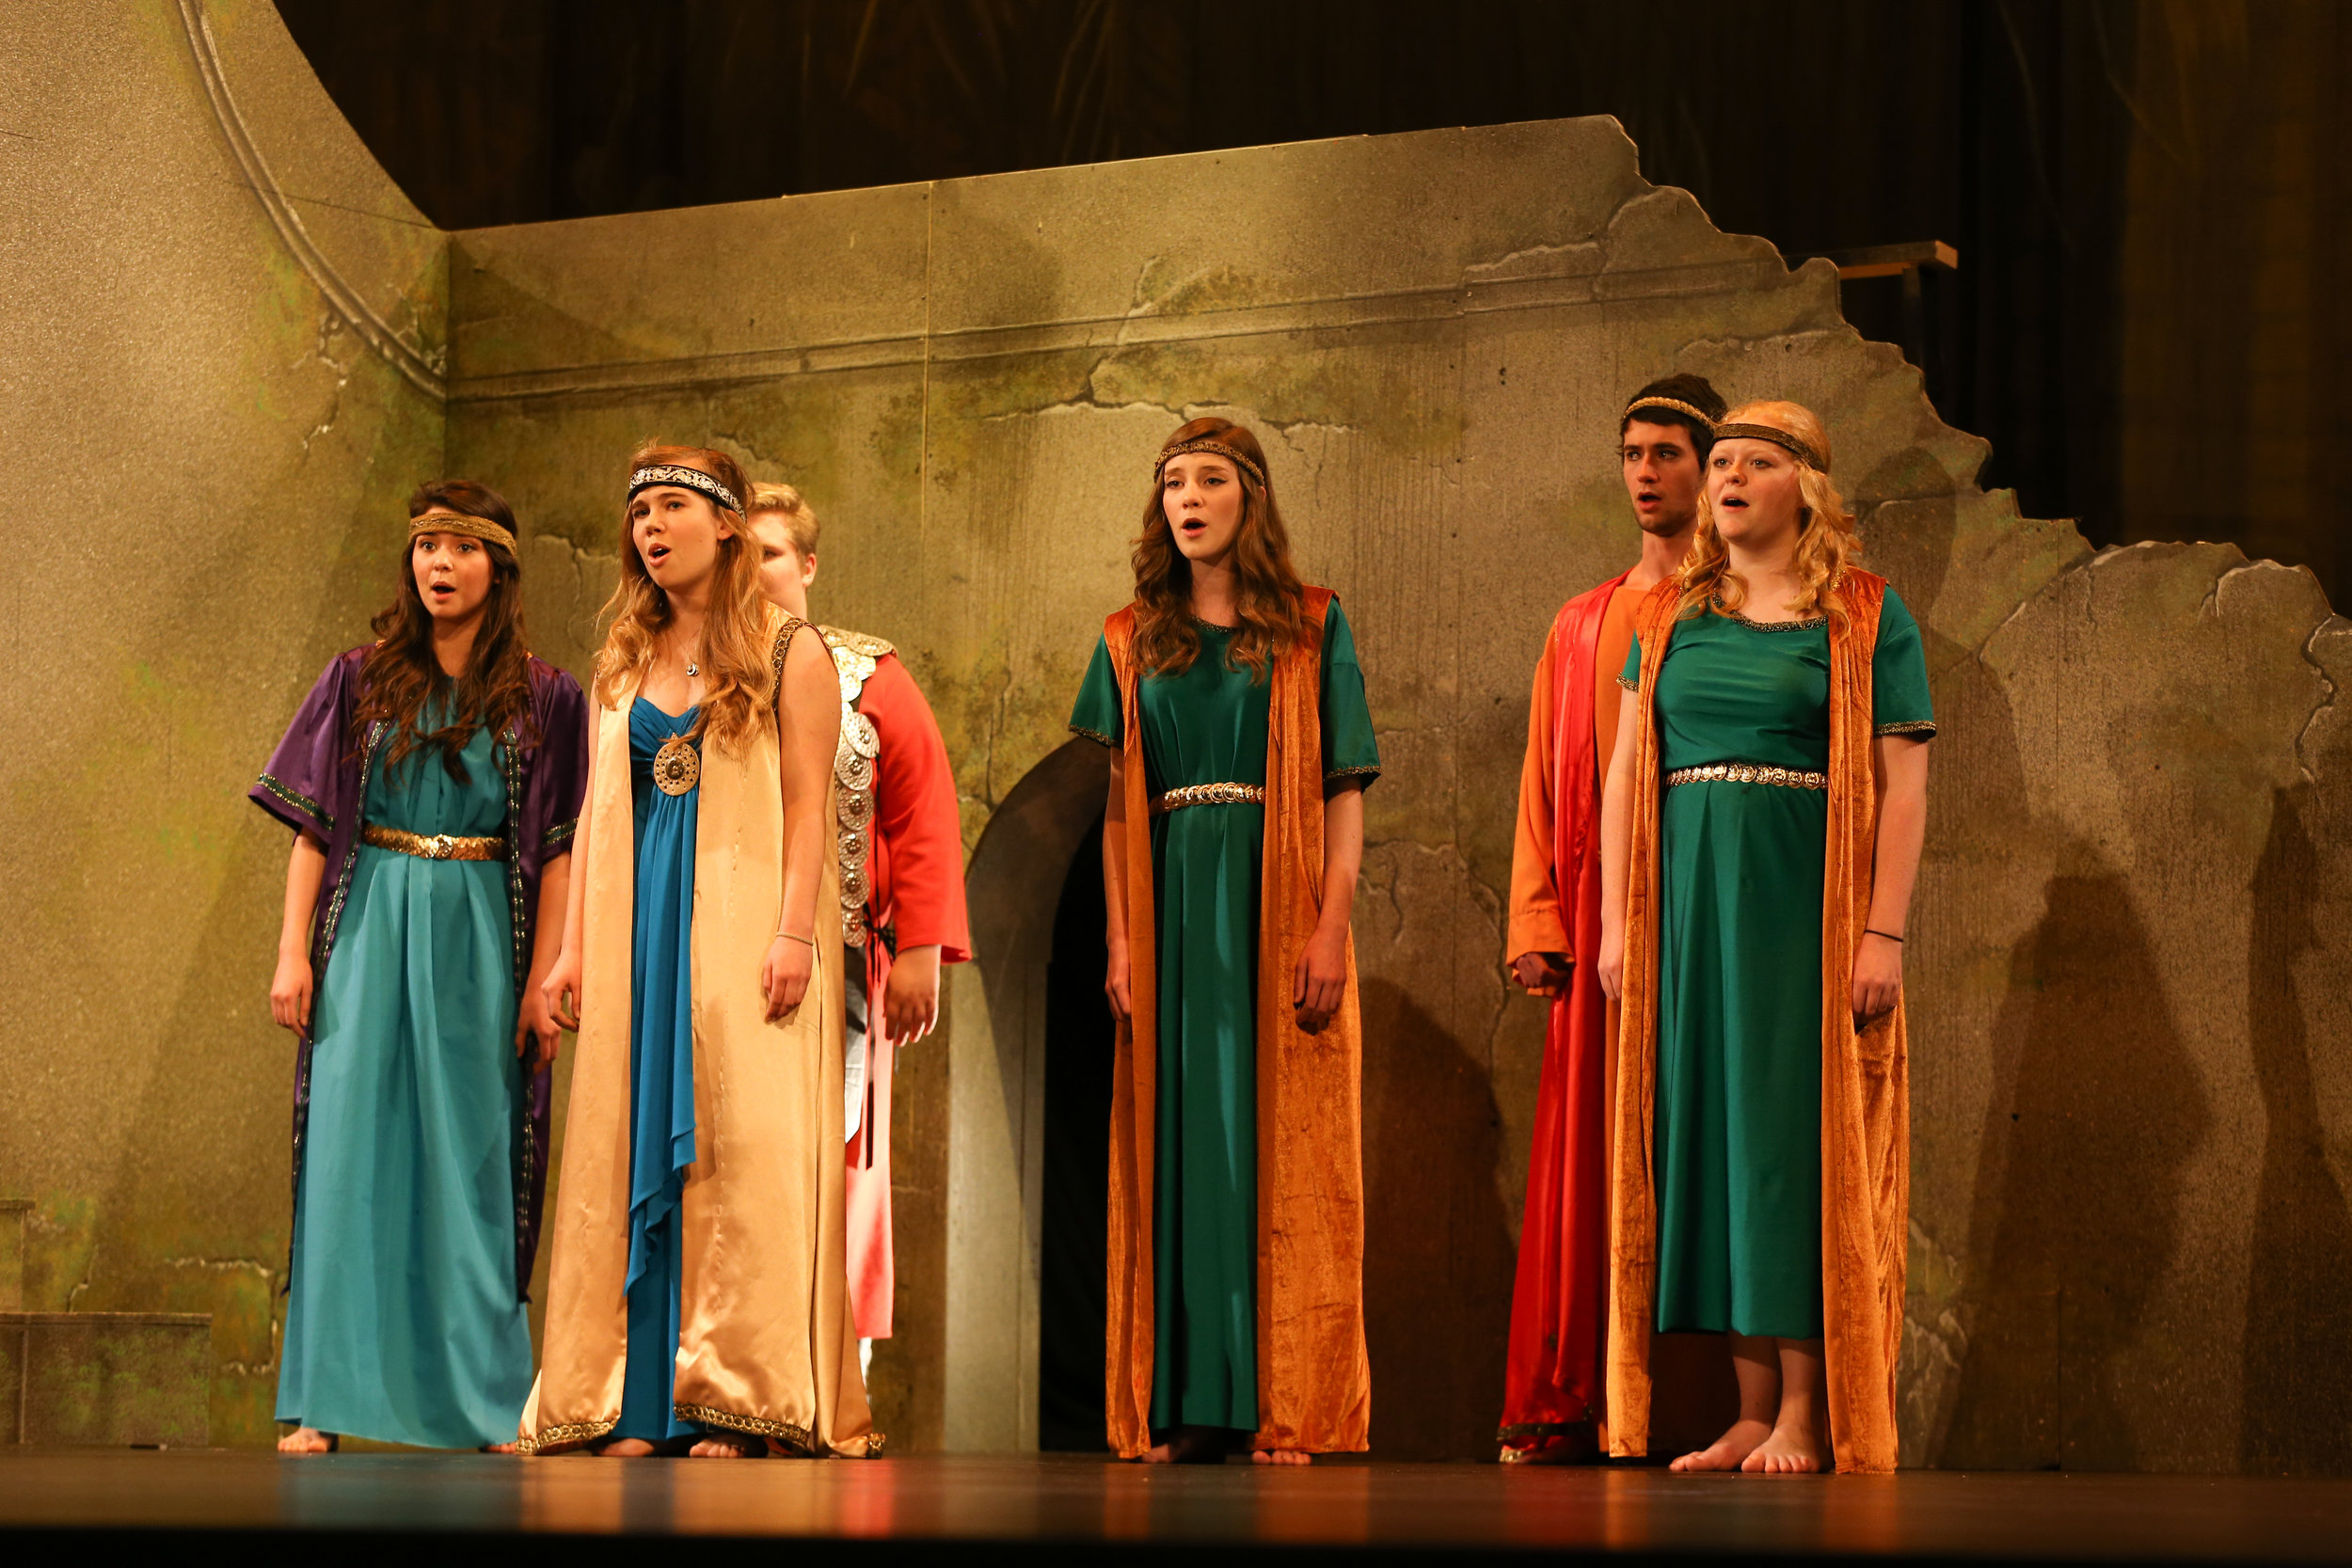 - Rose (center) in an opera performance.